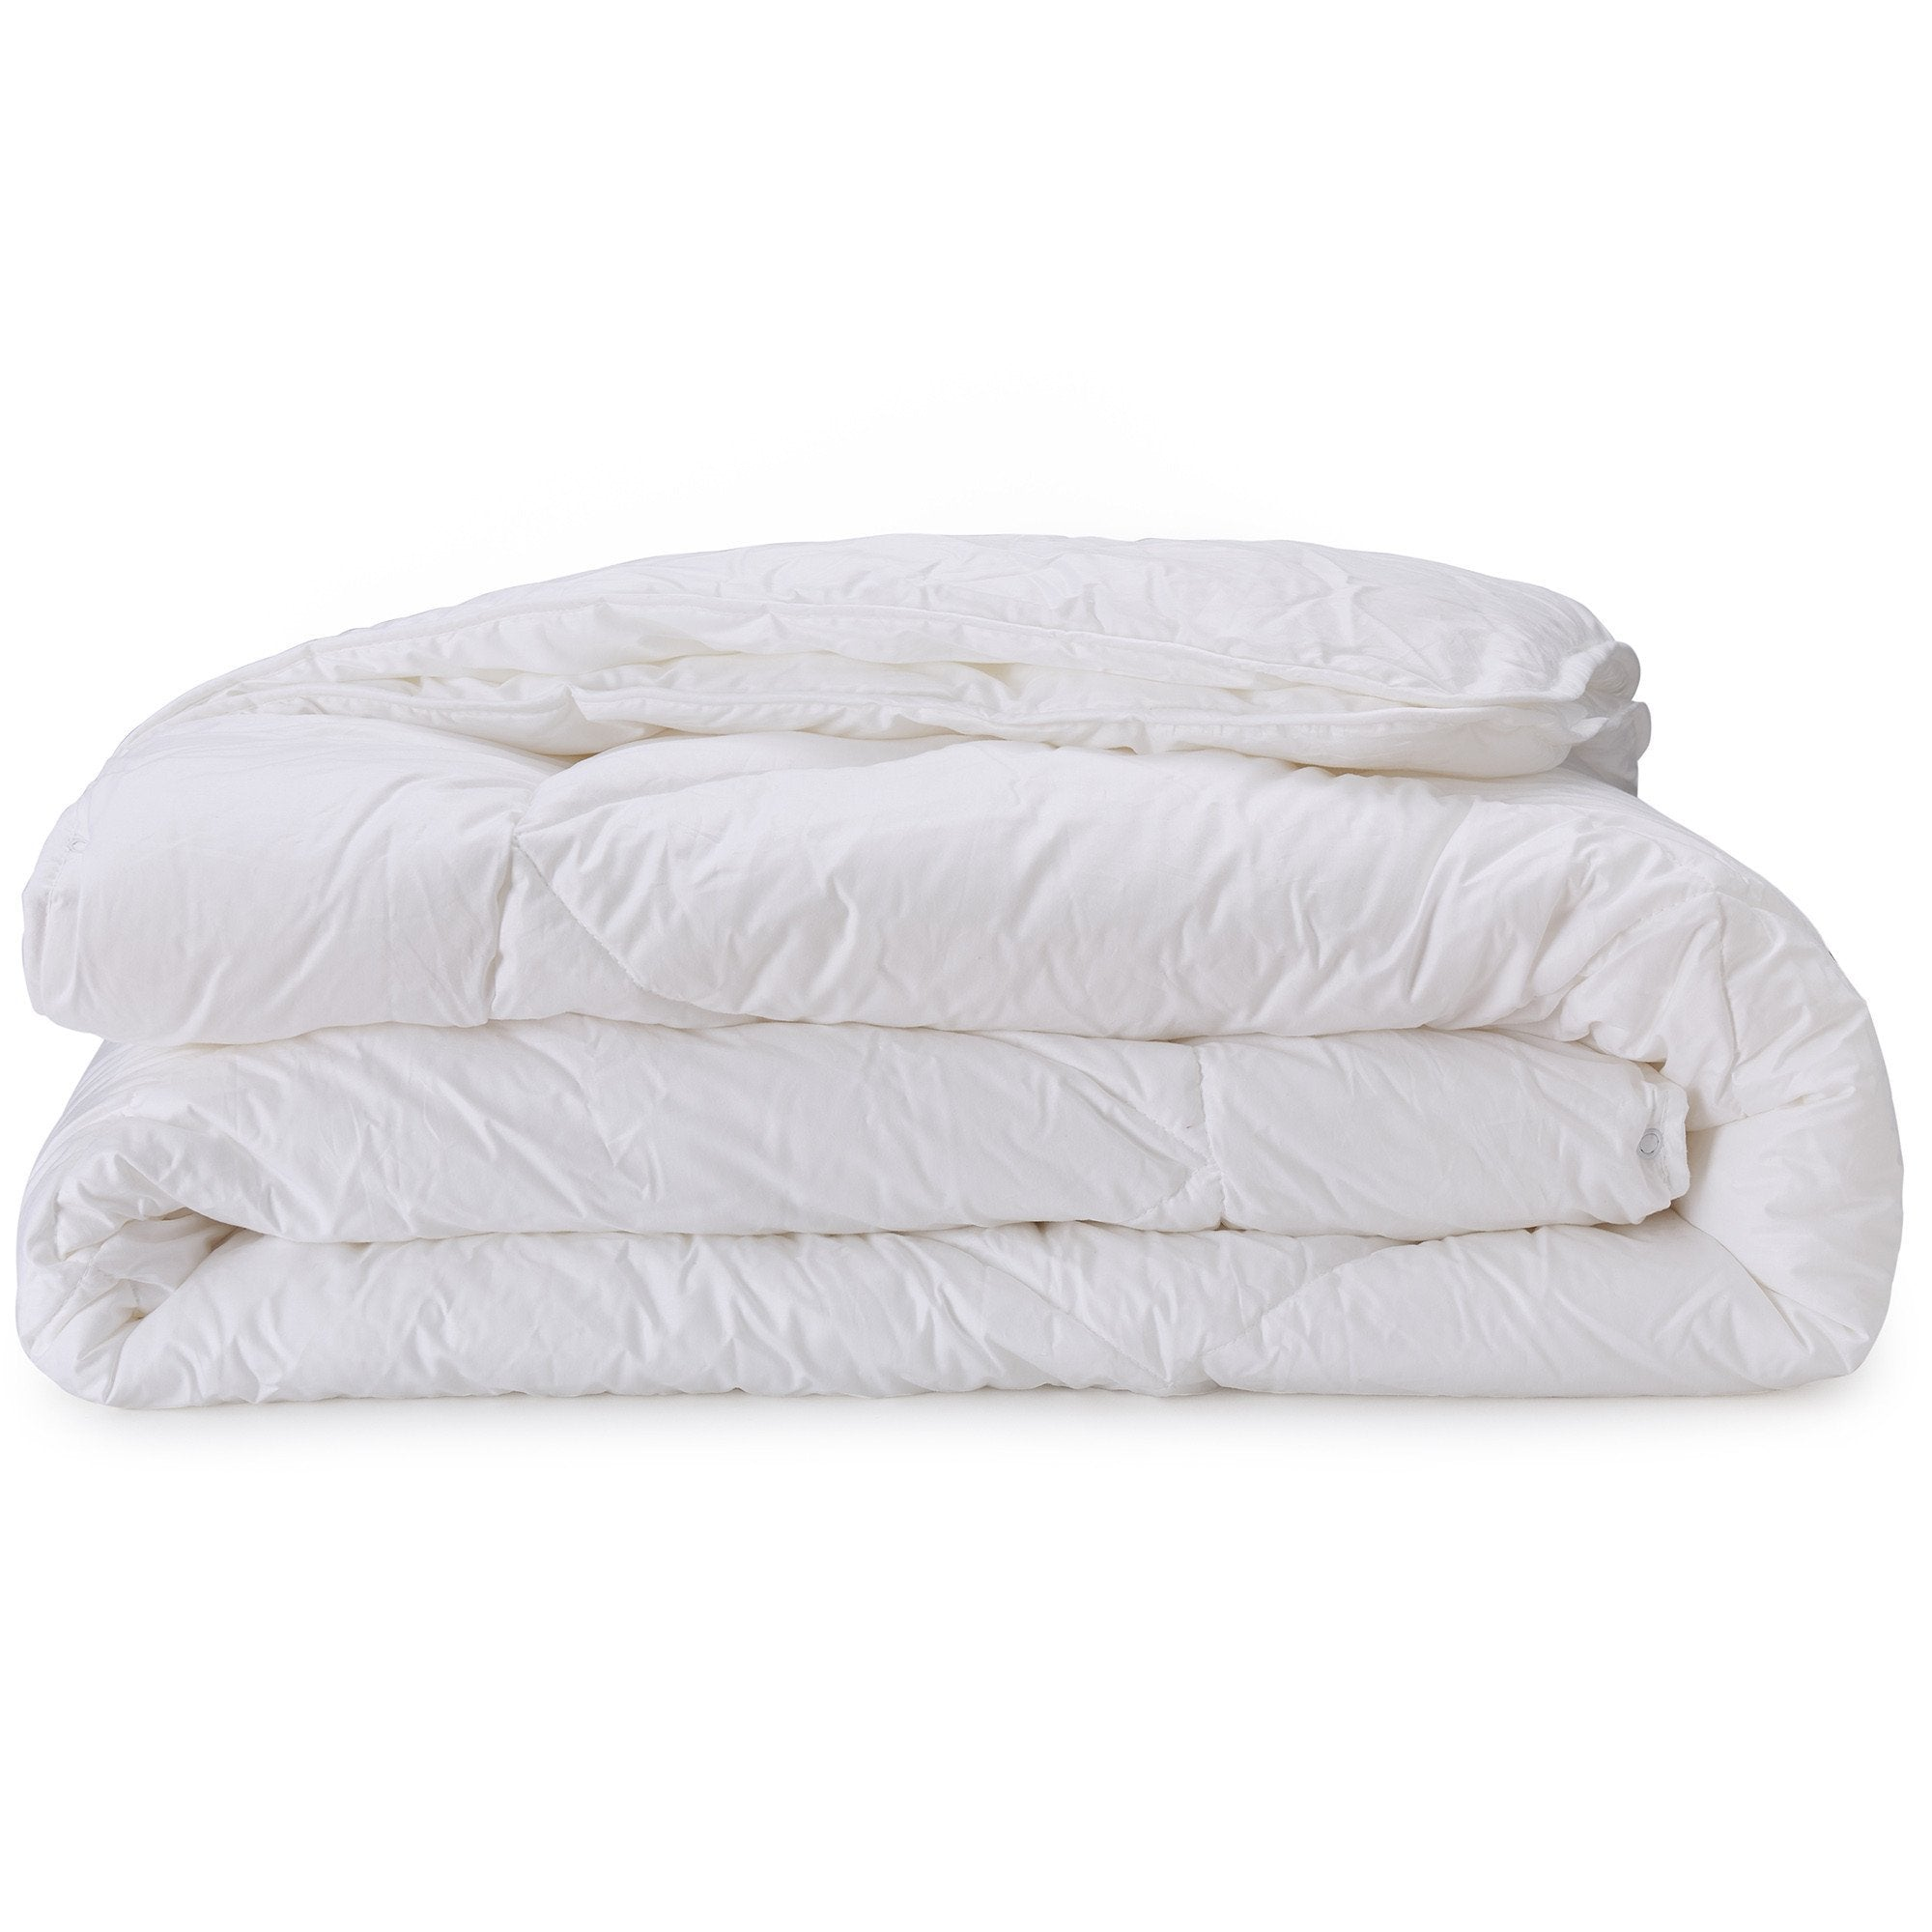 Elsing duvet, white, 100% polyester & 100% cotton